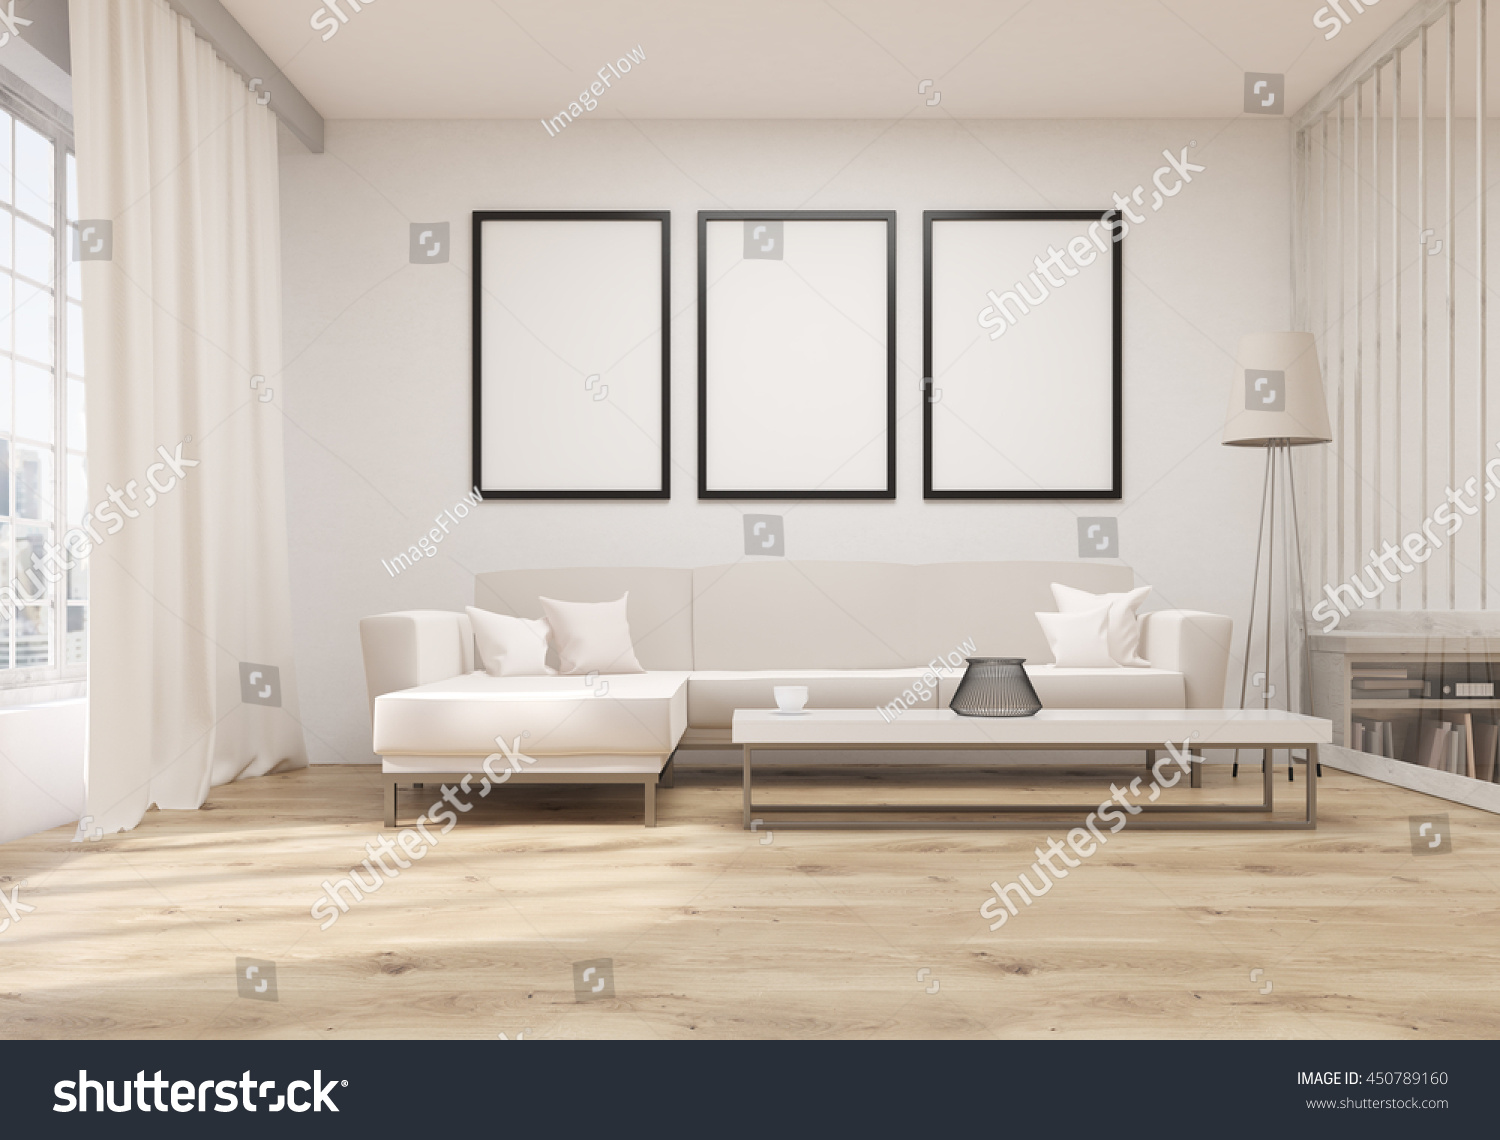 How to decorate living room with frames awesome home design for Front room ideas